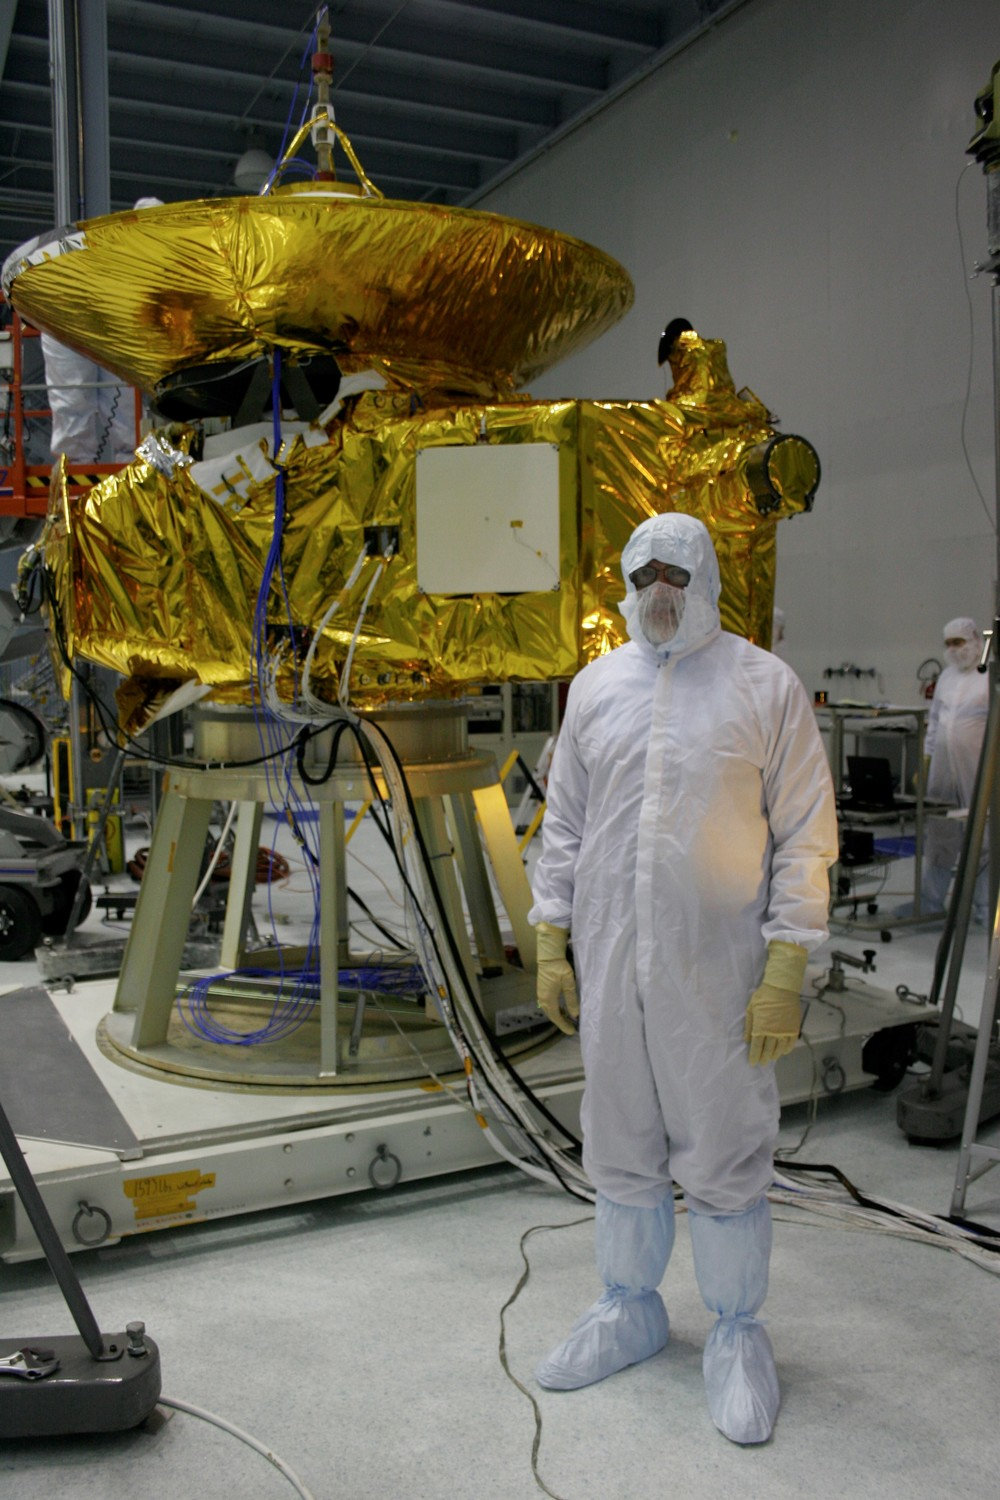 David during environmental testing of New Horizons spacecraft at Goddard Space Flight Center (GSFC), October 3, 2005. APL uses GSFC's large thermal vacuum chamber to simulate the space environment, and its acoustic testing chamber to subject spacecraft to sound levels experienced during launch, which cause mechanical vibrations in the spacecraft.